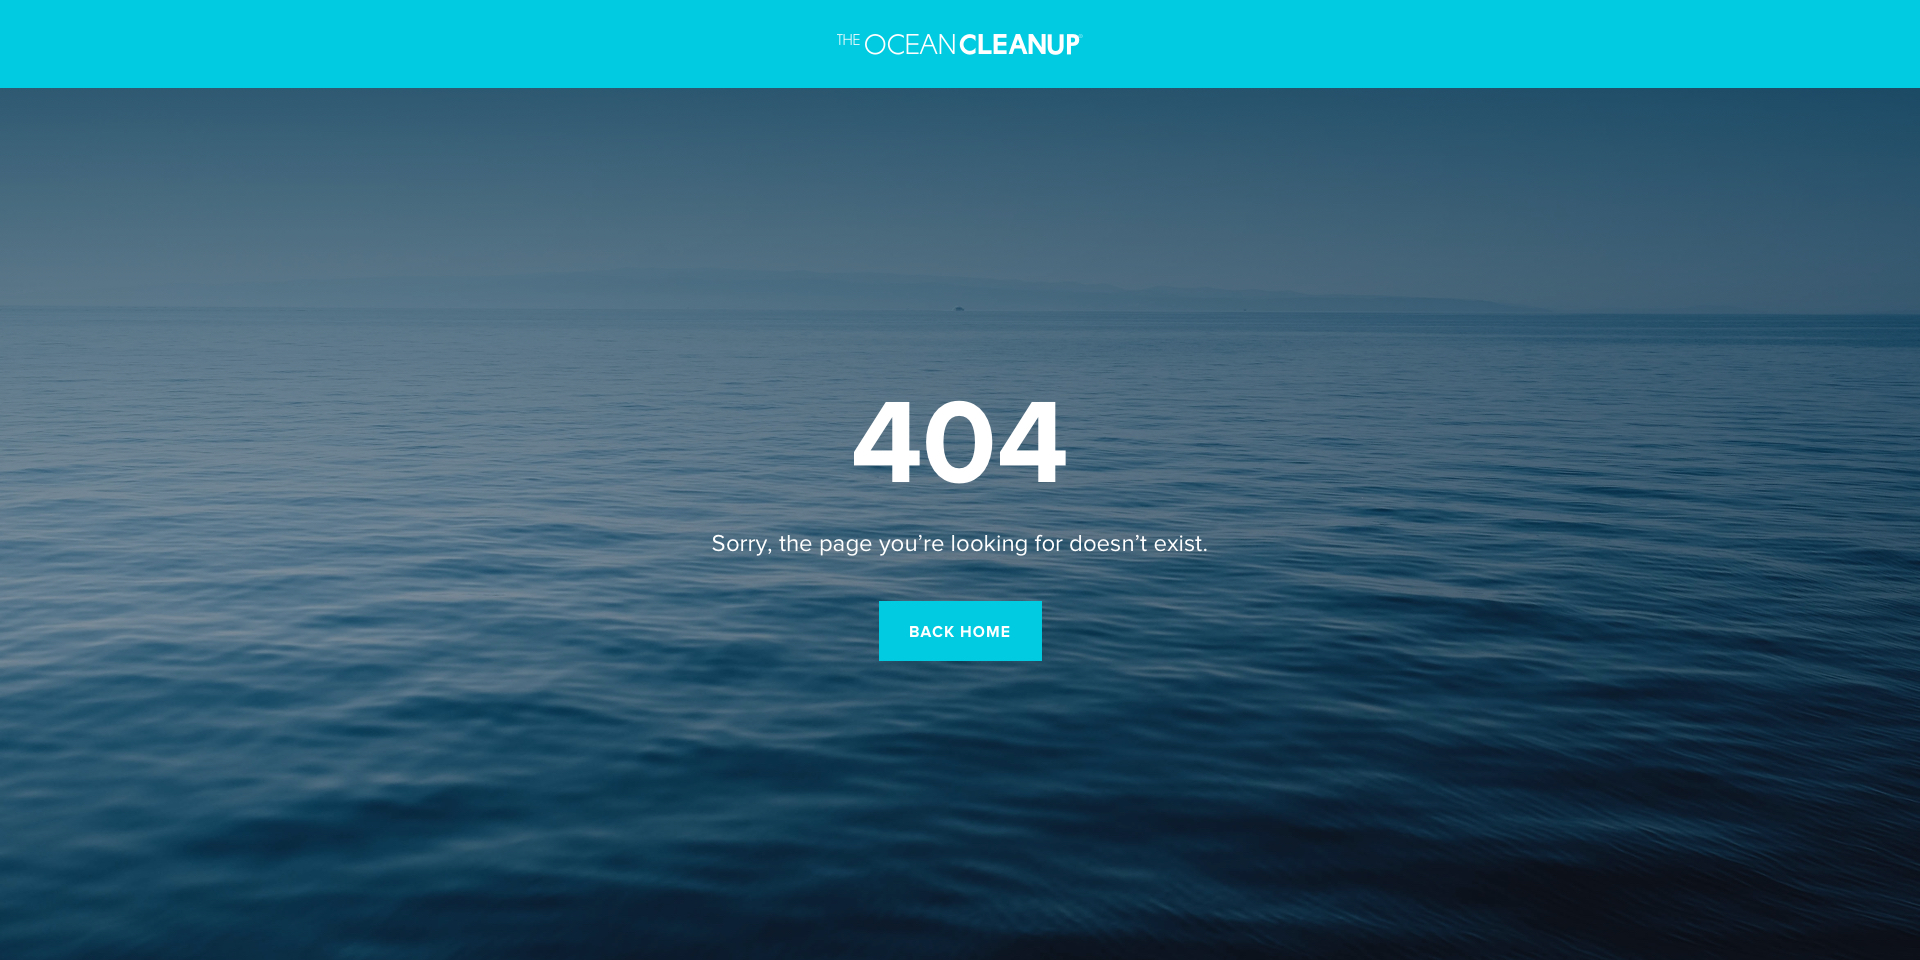 The Ocean Cleanup site inner page